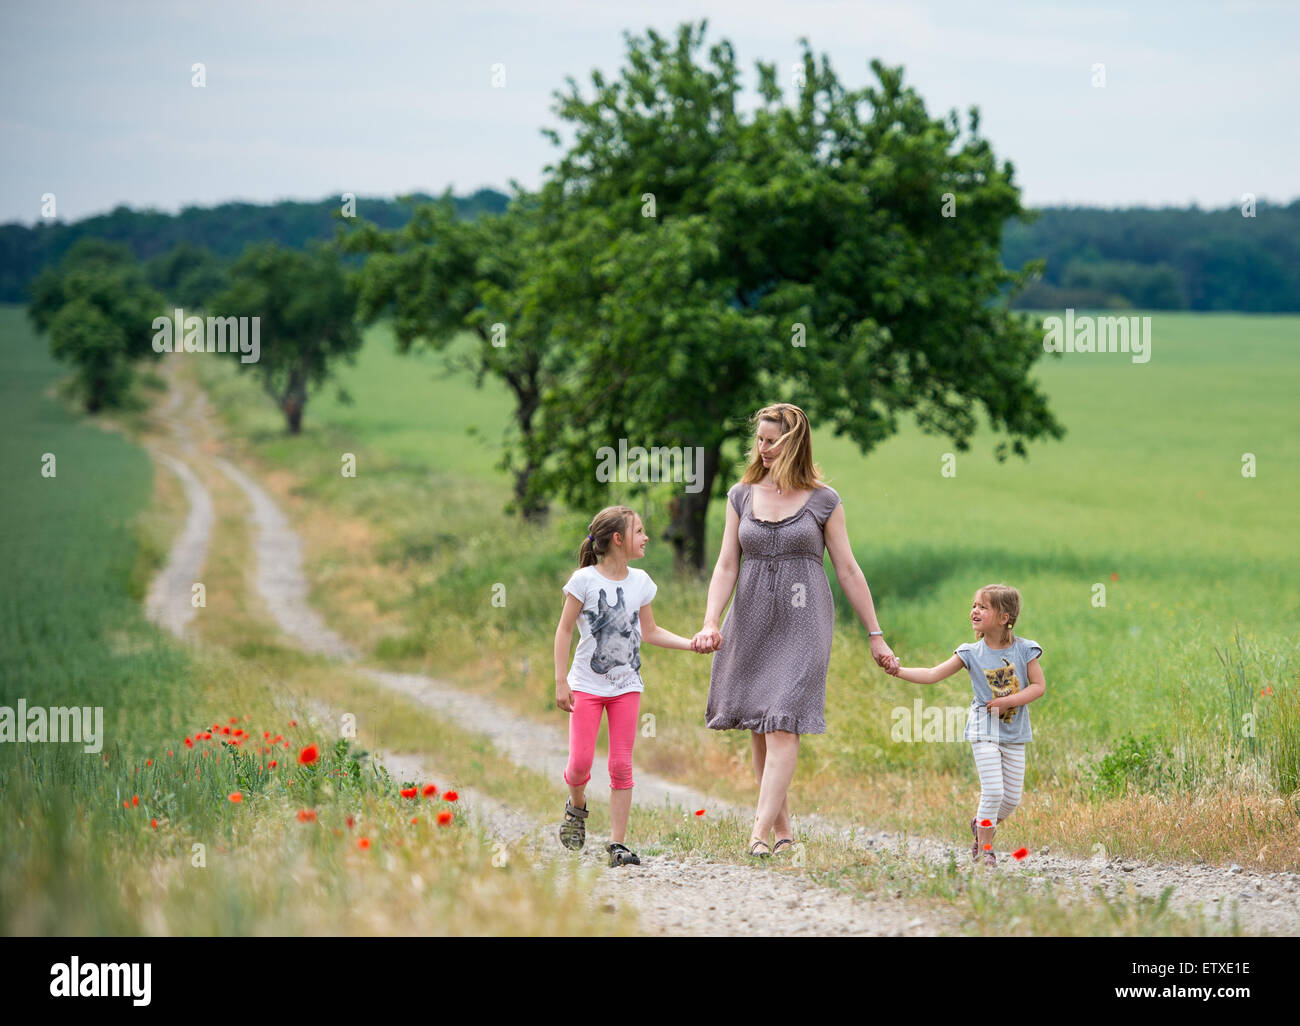 A mother and her two daughters take a walk along a field road during summery 30 degrees Celsius near Prötzel - Stock Image